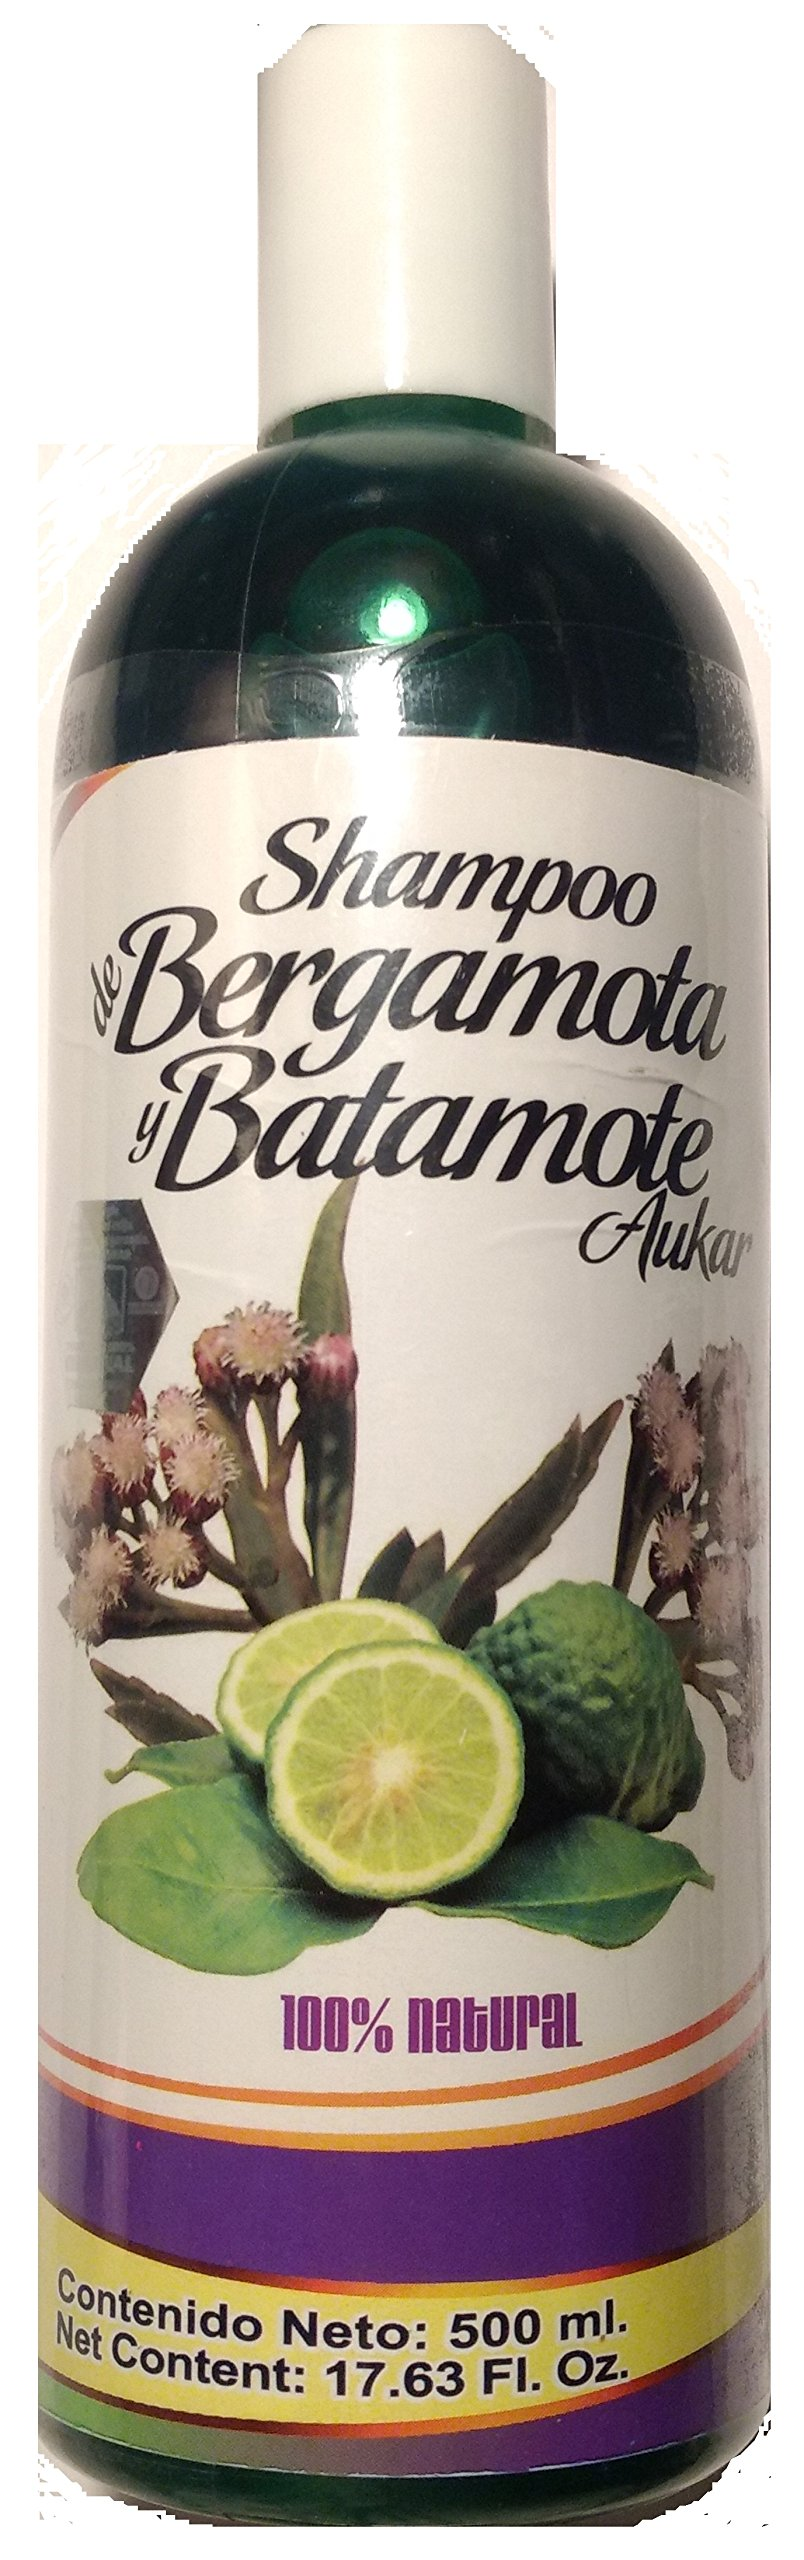 Shampoo de Bergamota y Batamote Aukar, 500 ml / 17.63 Fl Oz. Shampoo of Bergamot and Batamote Aukar, Hair Wroth, Strong Hair with more Shine